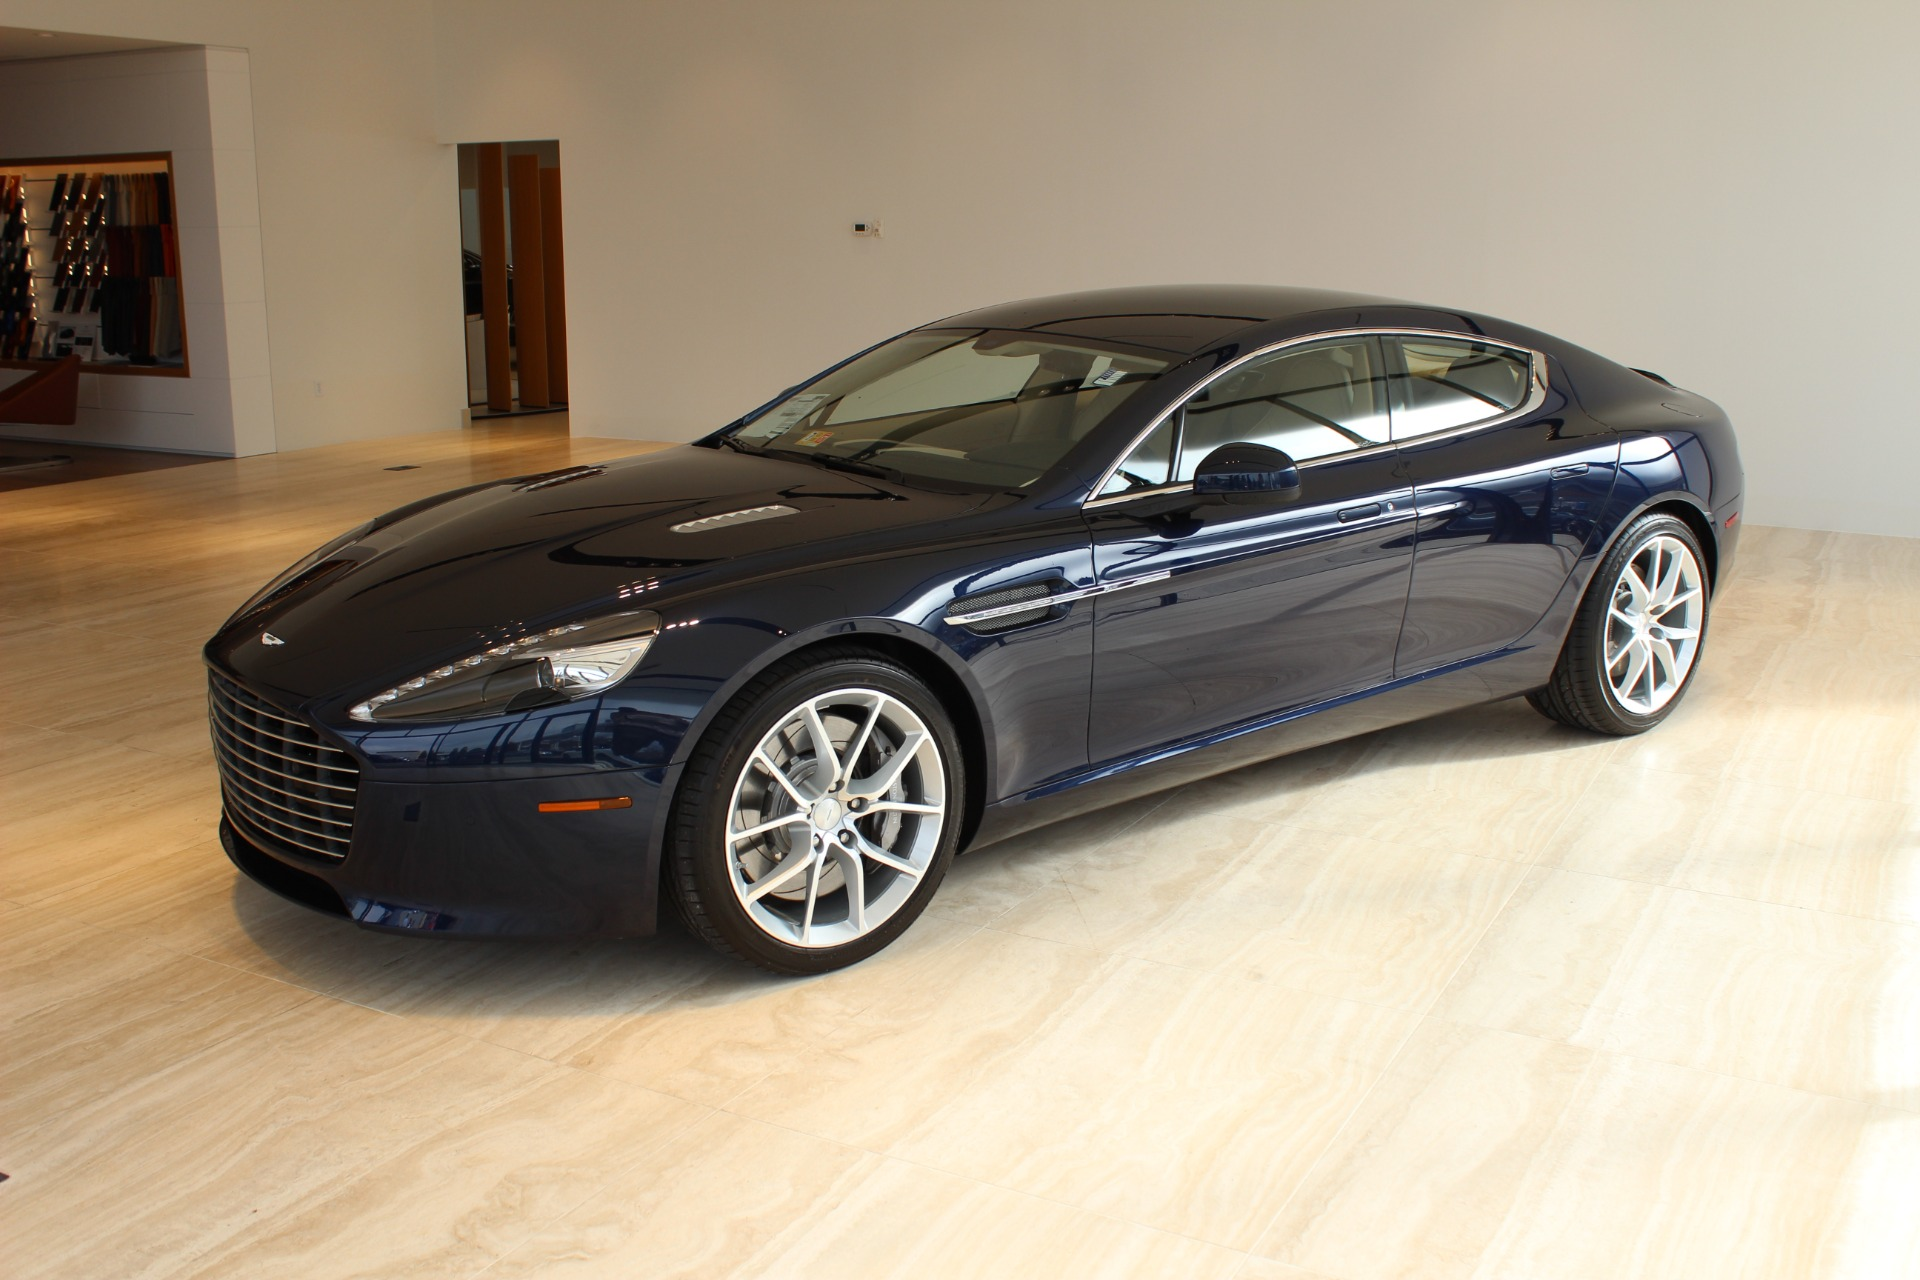 2016 Aston Martin Rapide S Stock # 6NF05498 For Sale Near